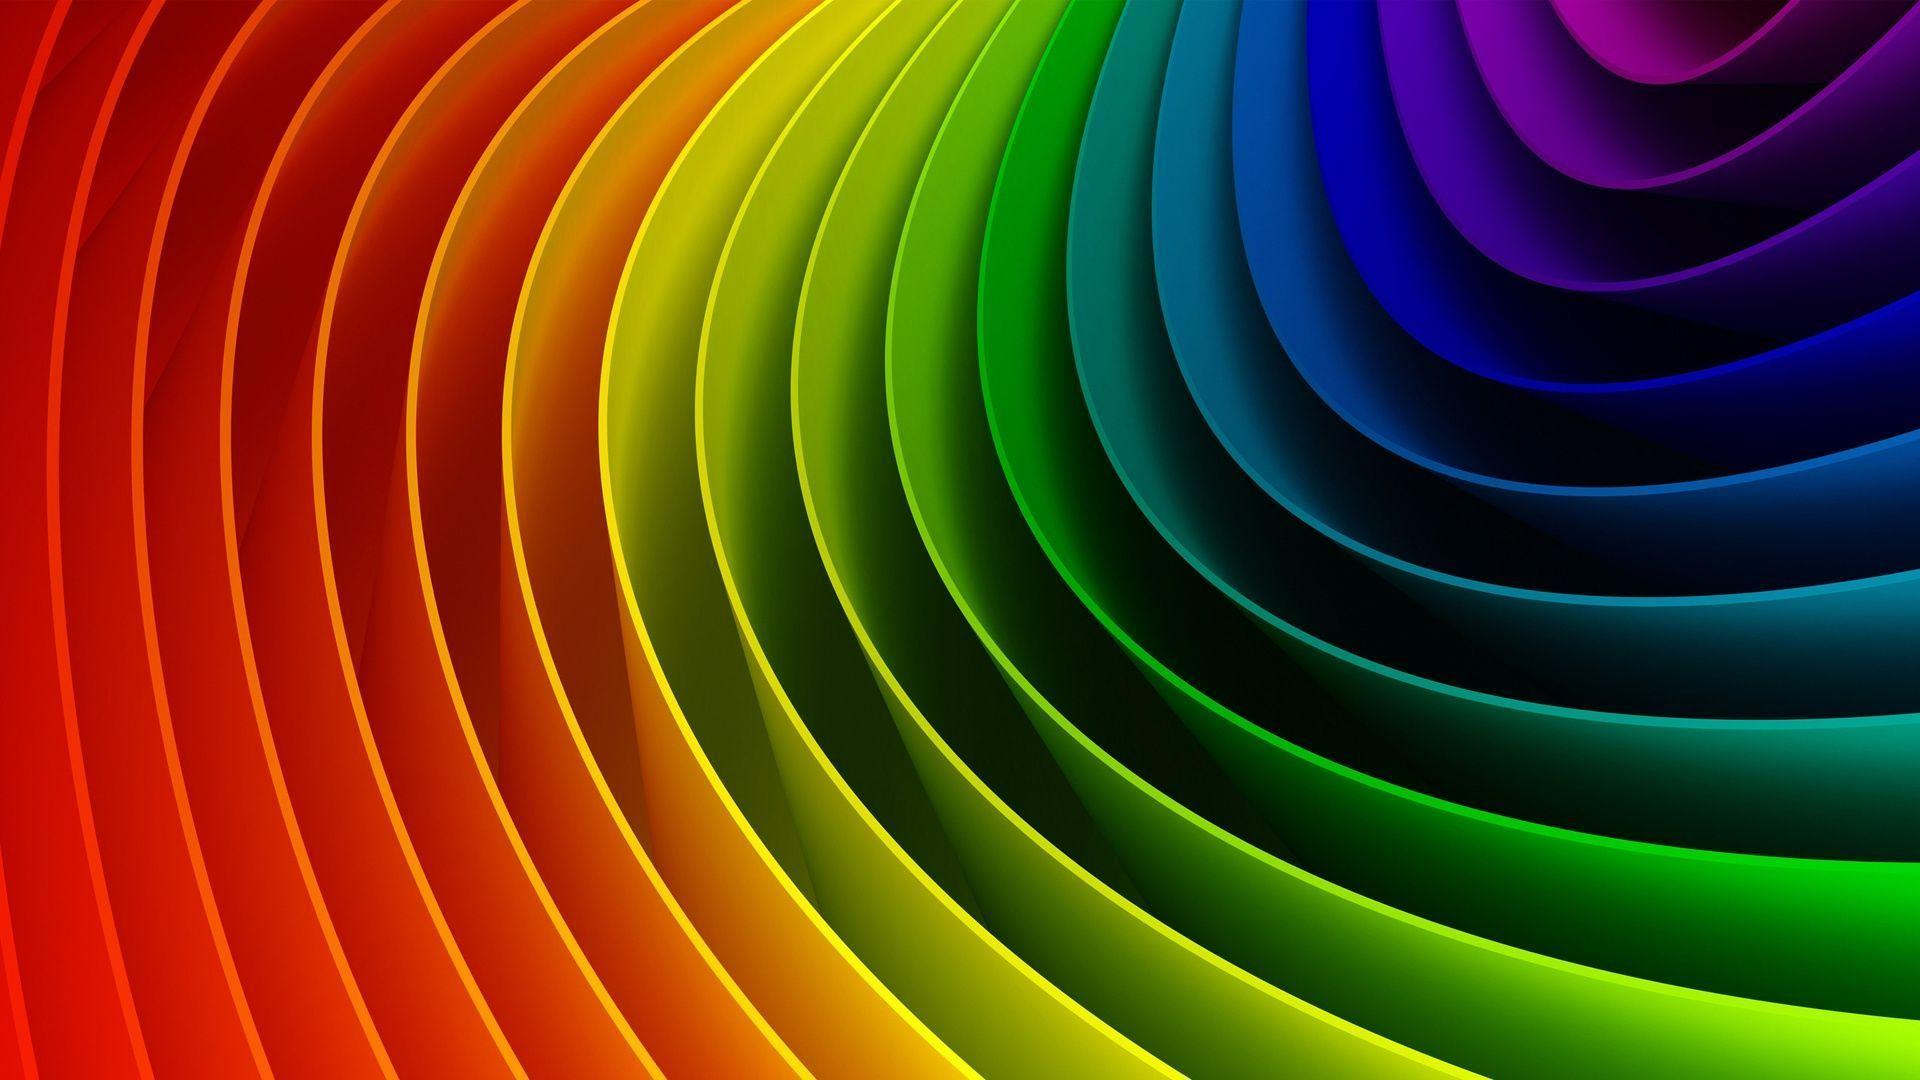 awesome rainbow wallpaper backgrounds - photo #11